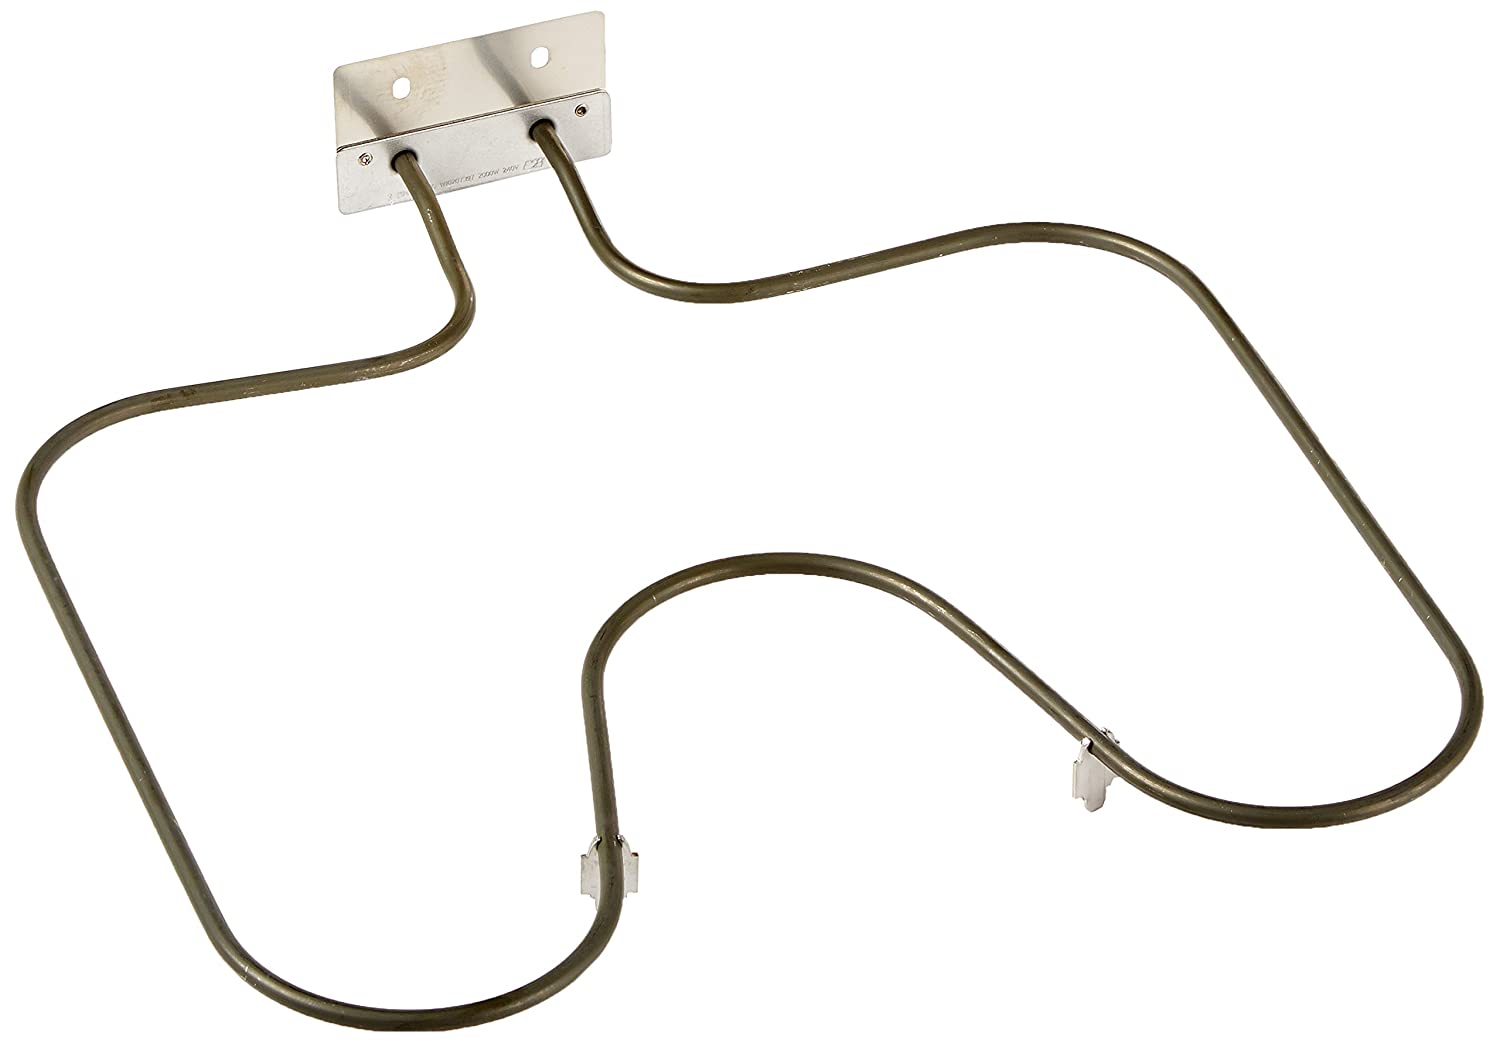 Whirlpool Whirlpool W10207397 Bake Element